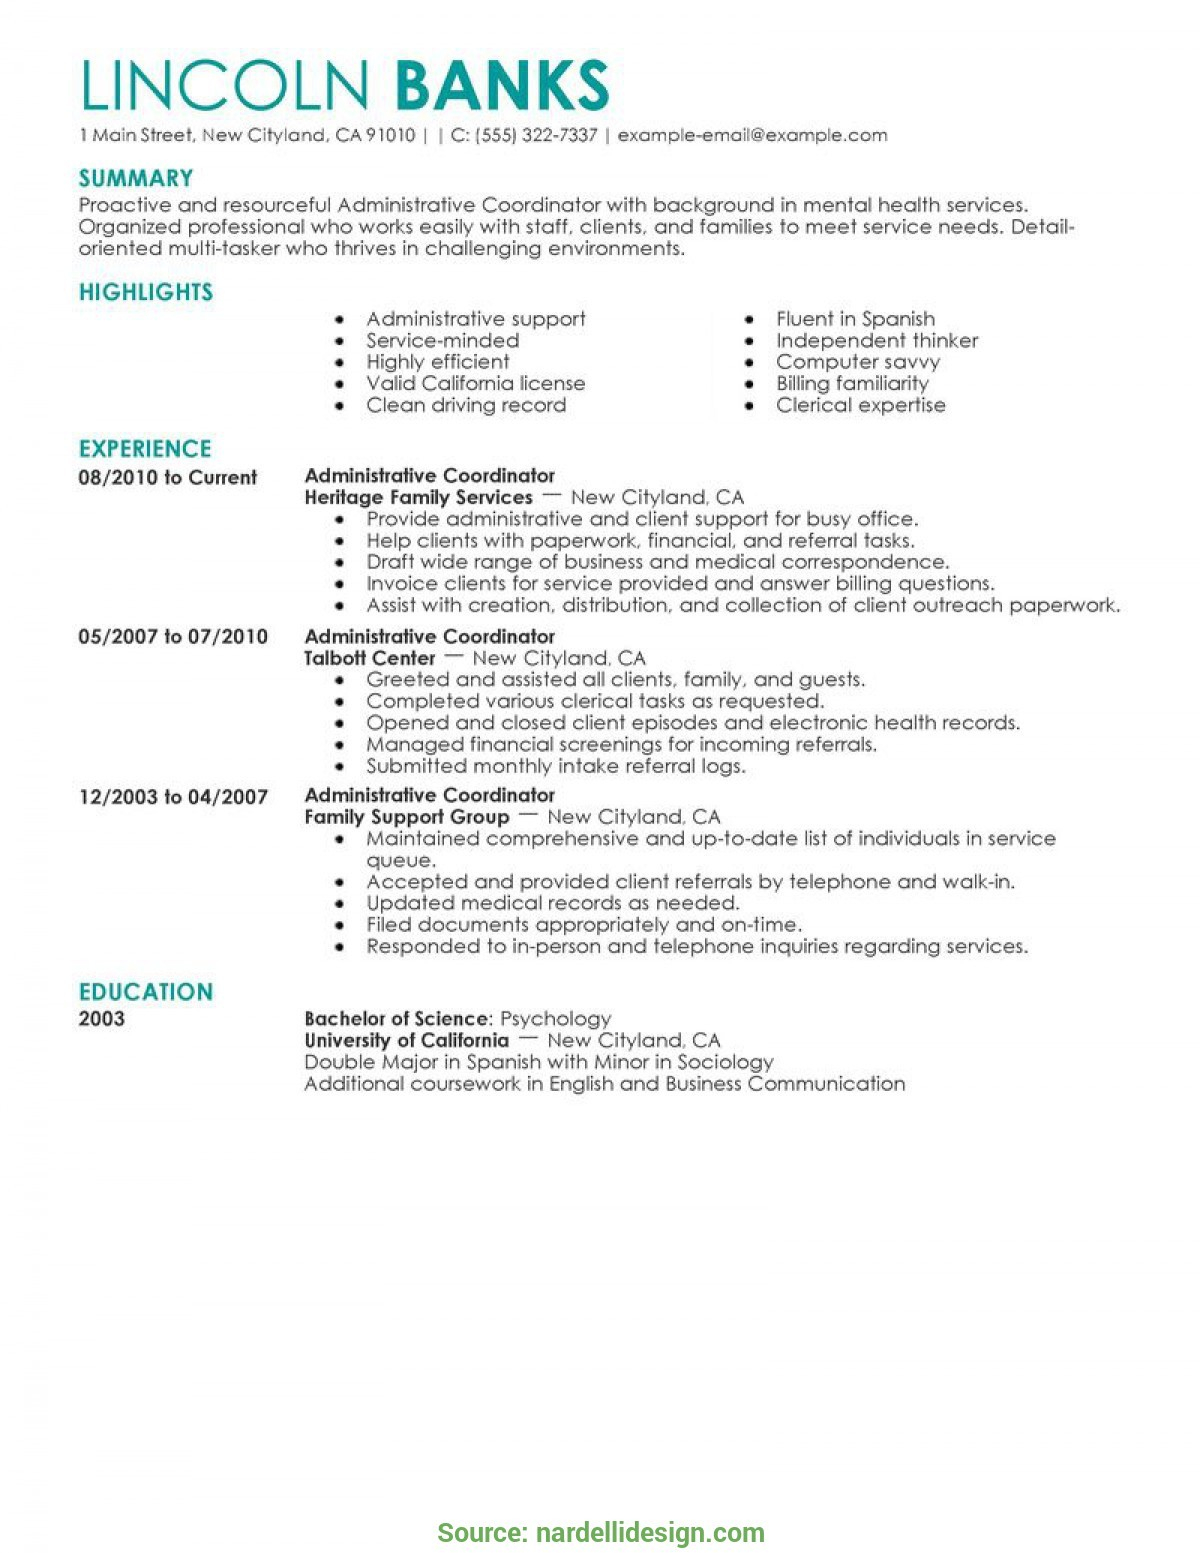 Clinical Research Coordinator Cv - Clinical Research Coordinator Resume Elegant Safety Coordinator